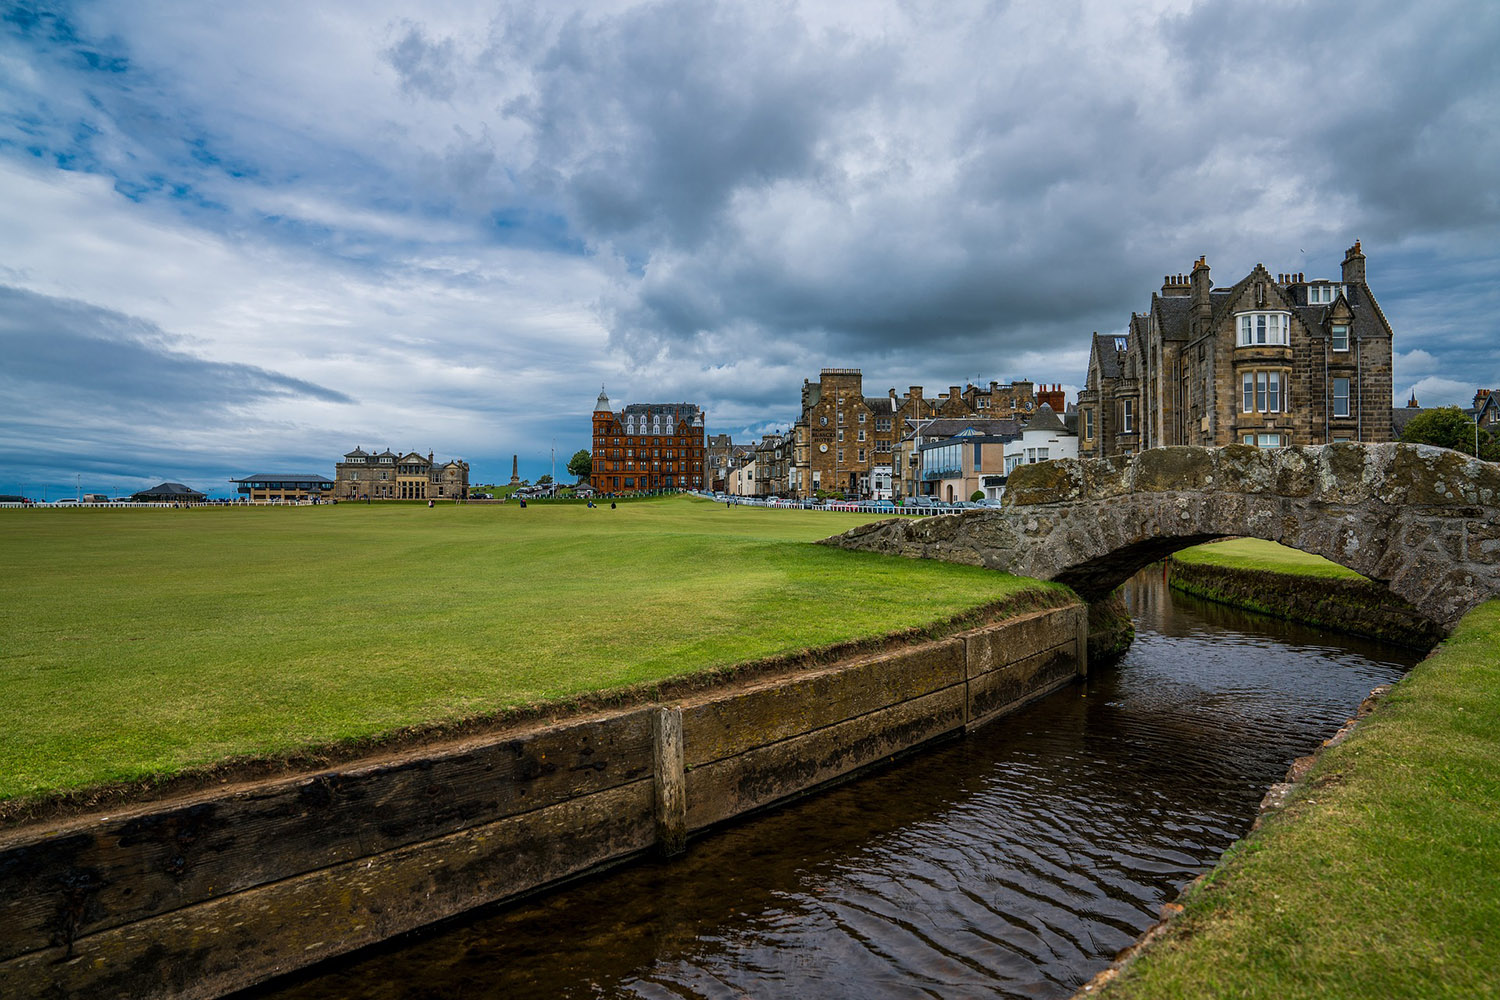 St Andrews Village is part of our royal and ancient tour of Scotland